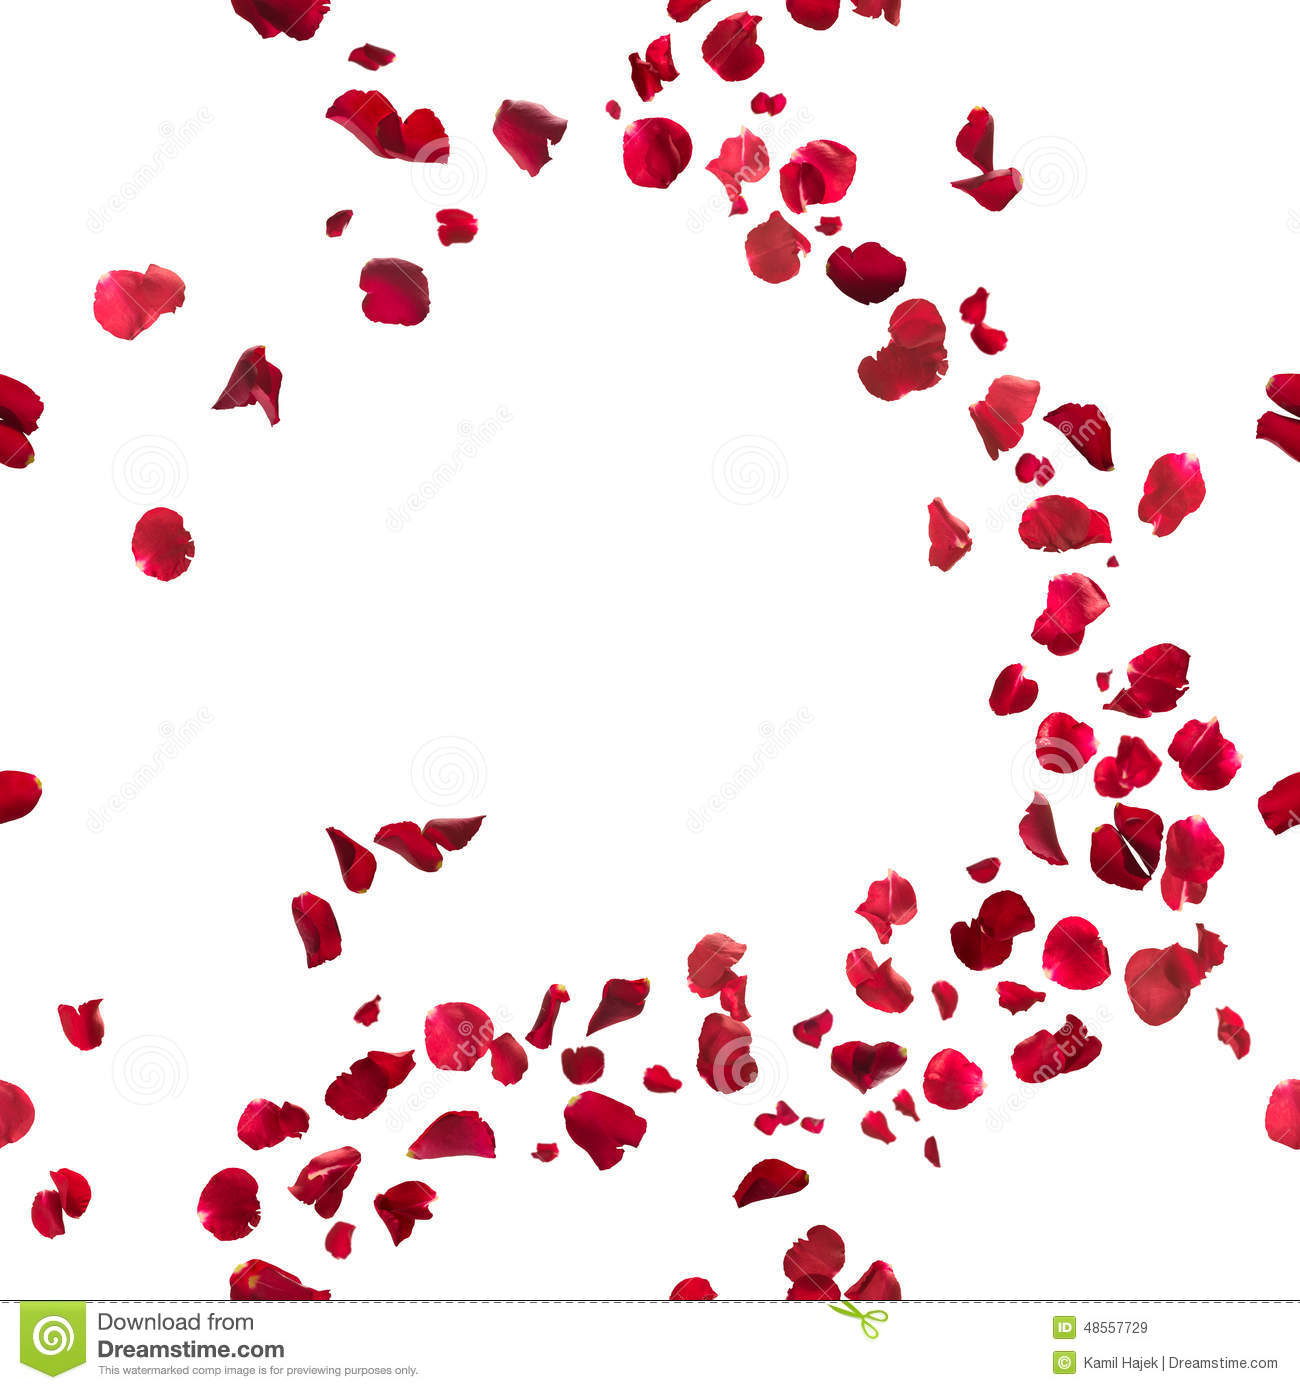 petals on the wind ebook free download